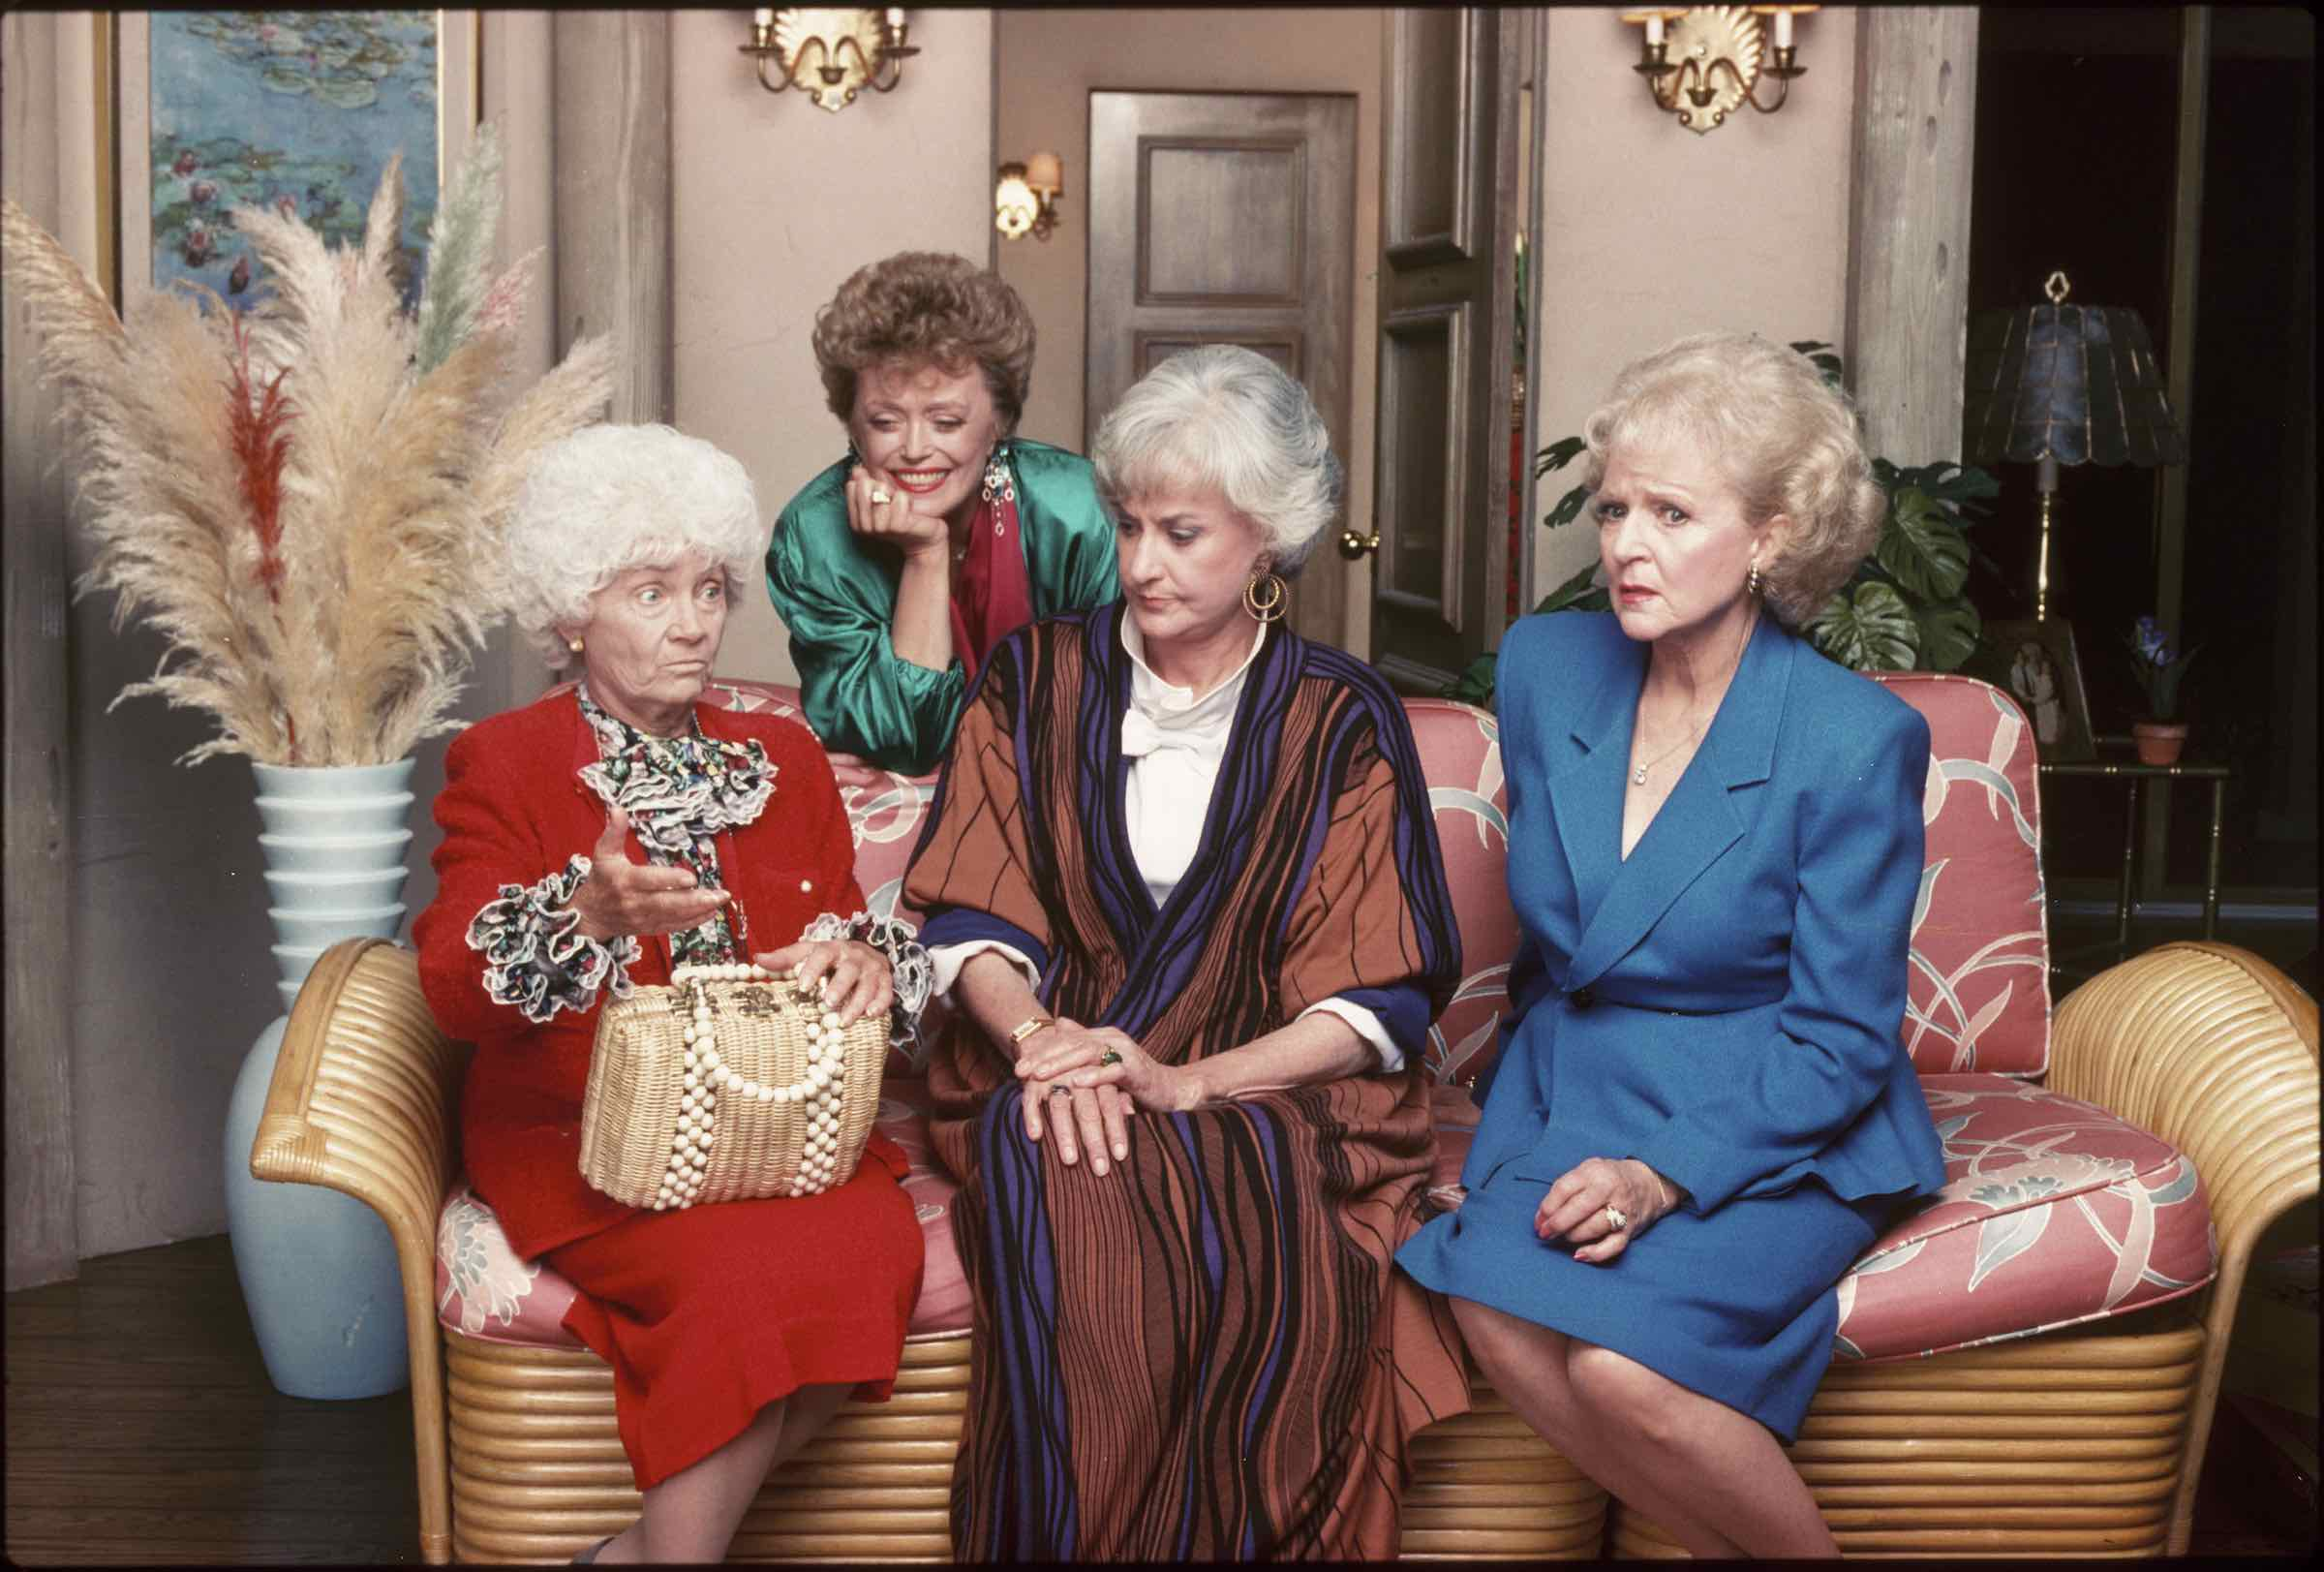 In honor of a shiny new 'The Golden Girls' coming our way on Netflix, here are five of our favorite episodes from NBC's best show of the 80s.